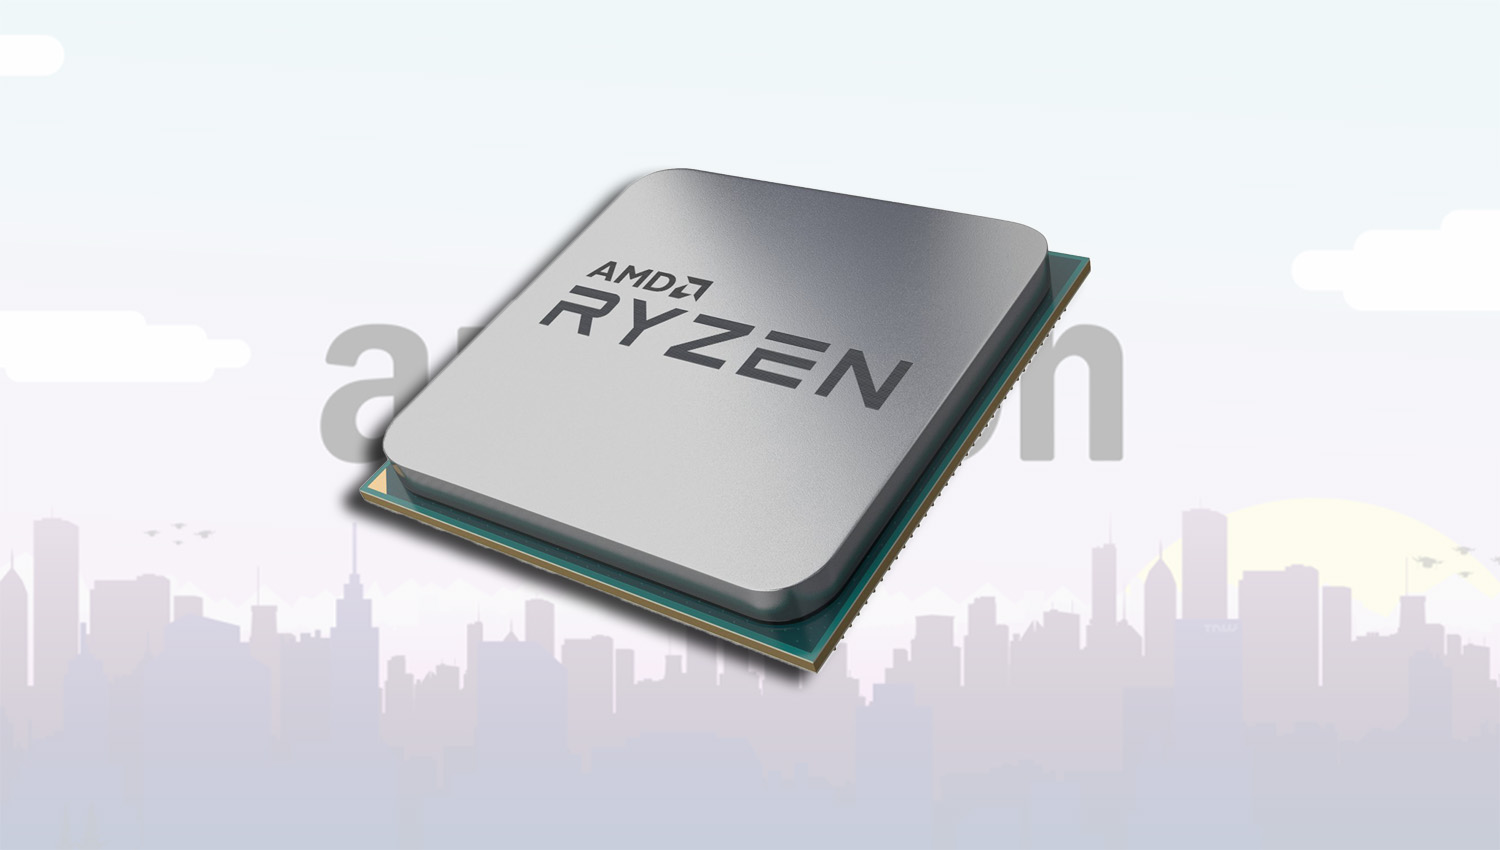 AMD's Powerful Ryzen 7 2700X and 2700 CPUs Are a Budget